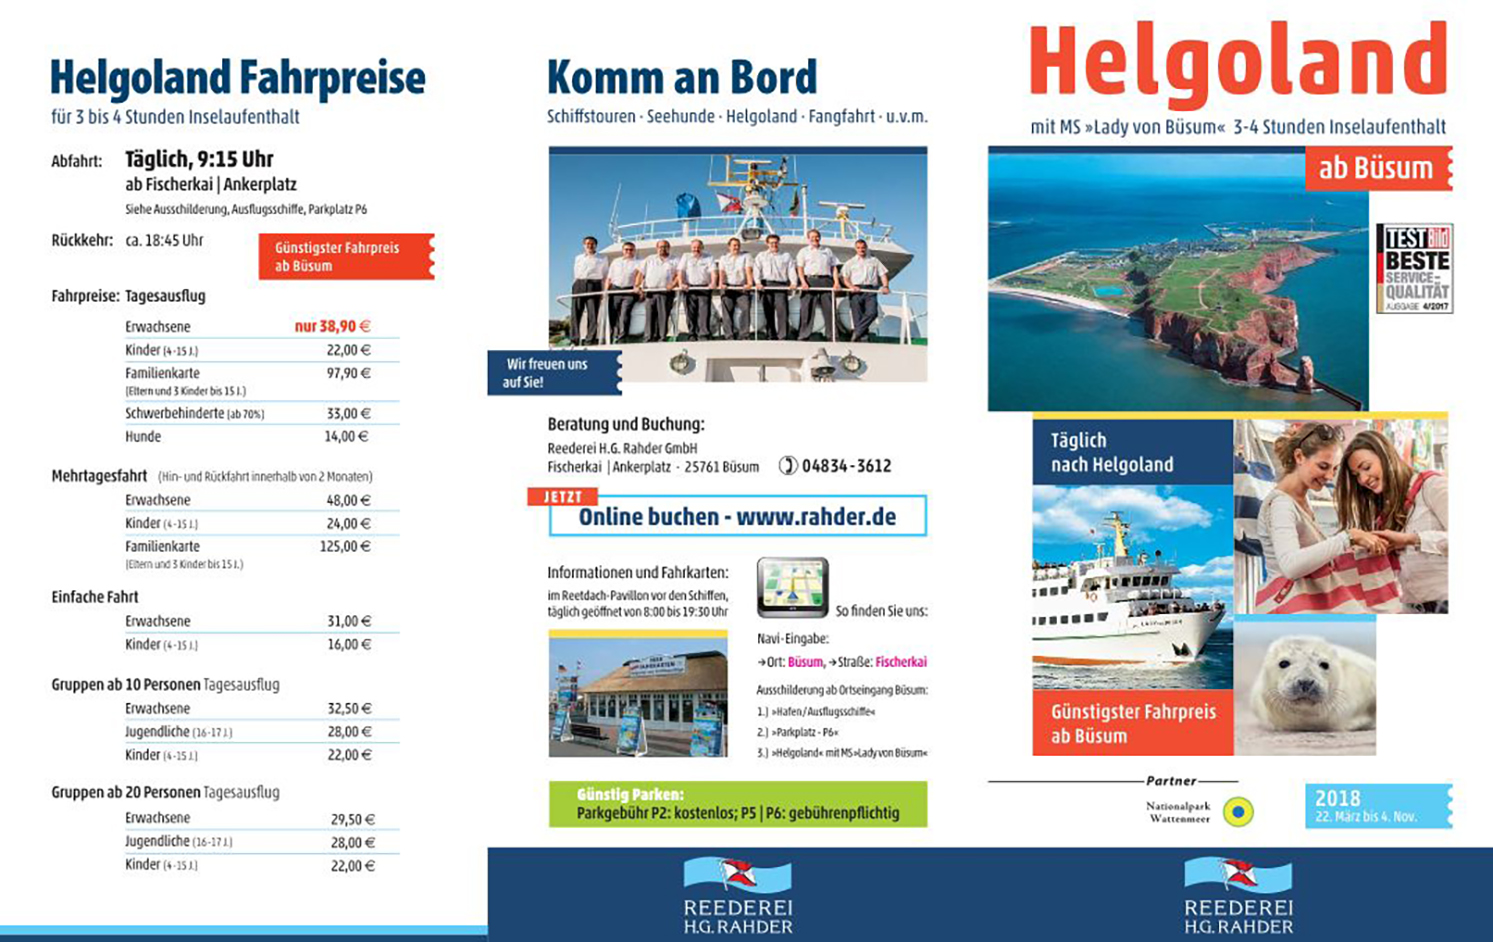 Kombi Multimar + Helgoland | Multimar Wattforum